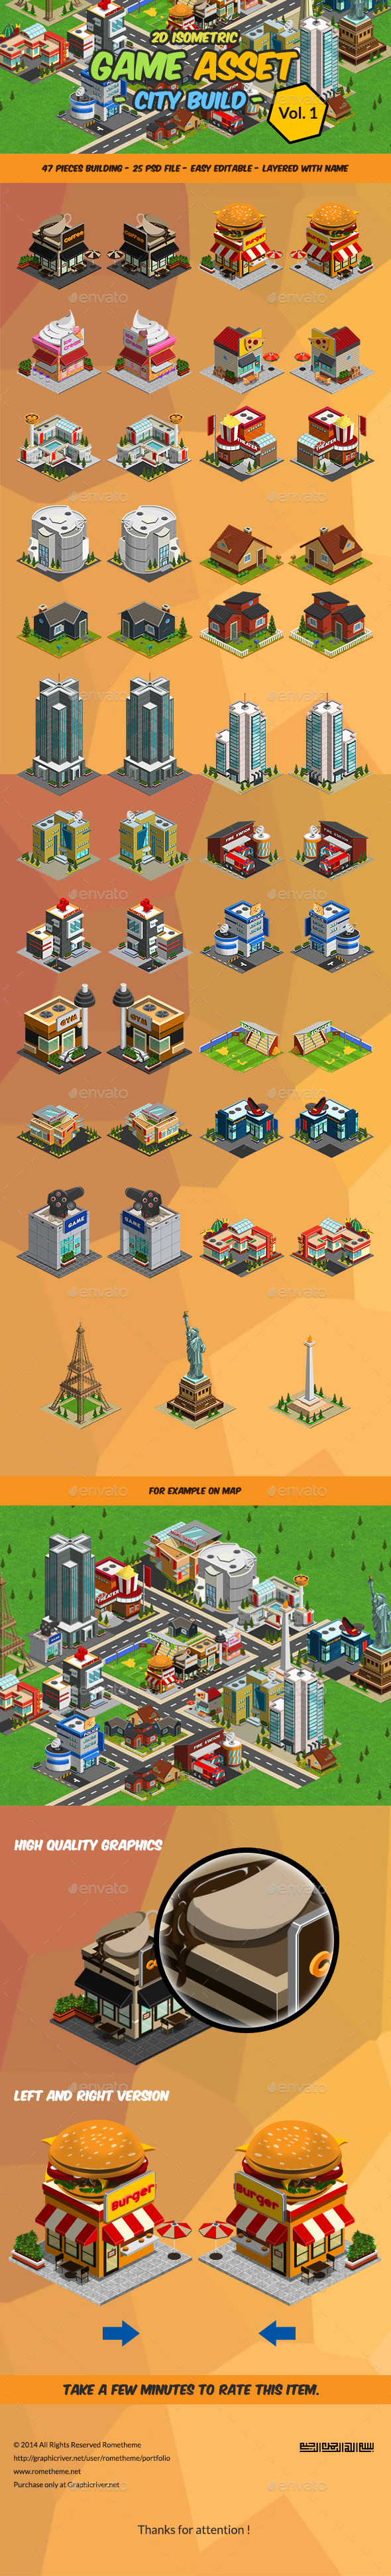 2D Isometric Game Asset - City Build Vol 1 - Tilesets Game Assets